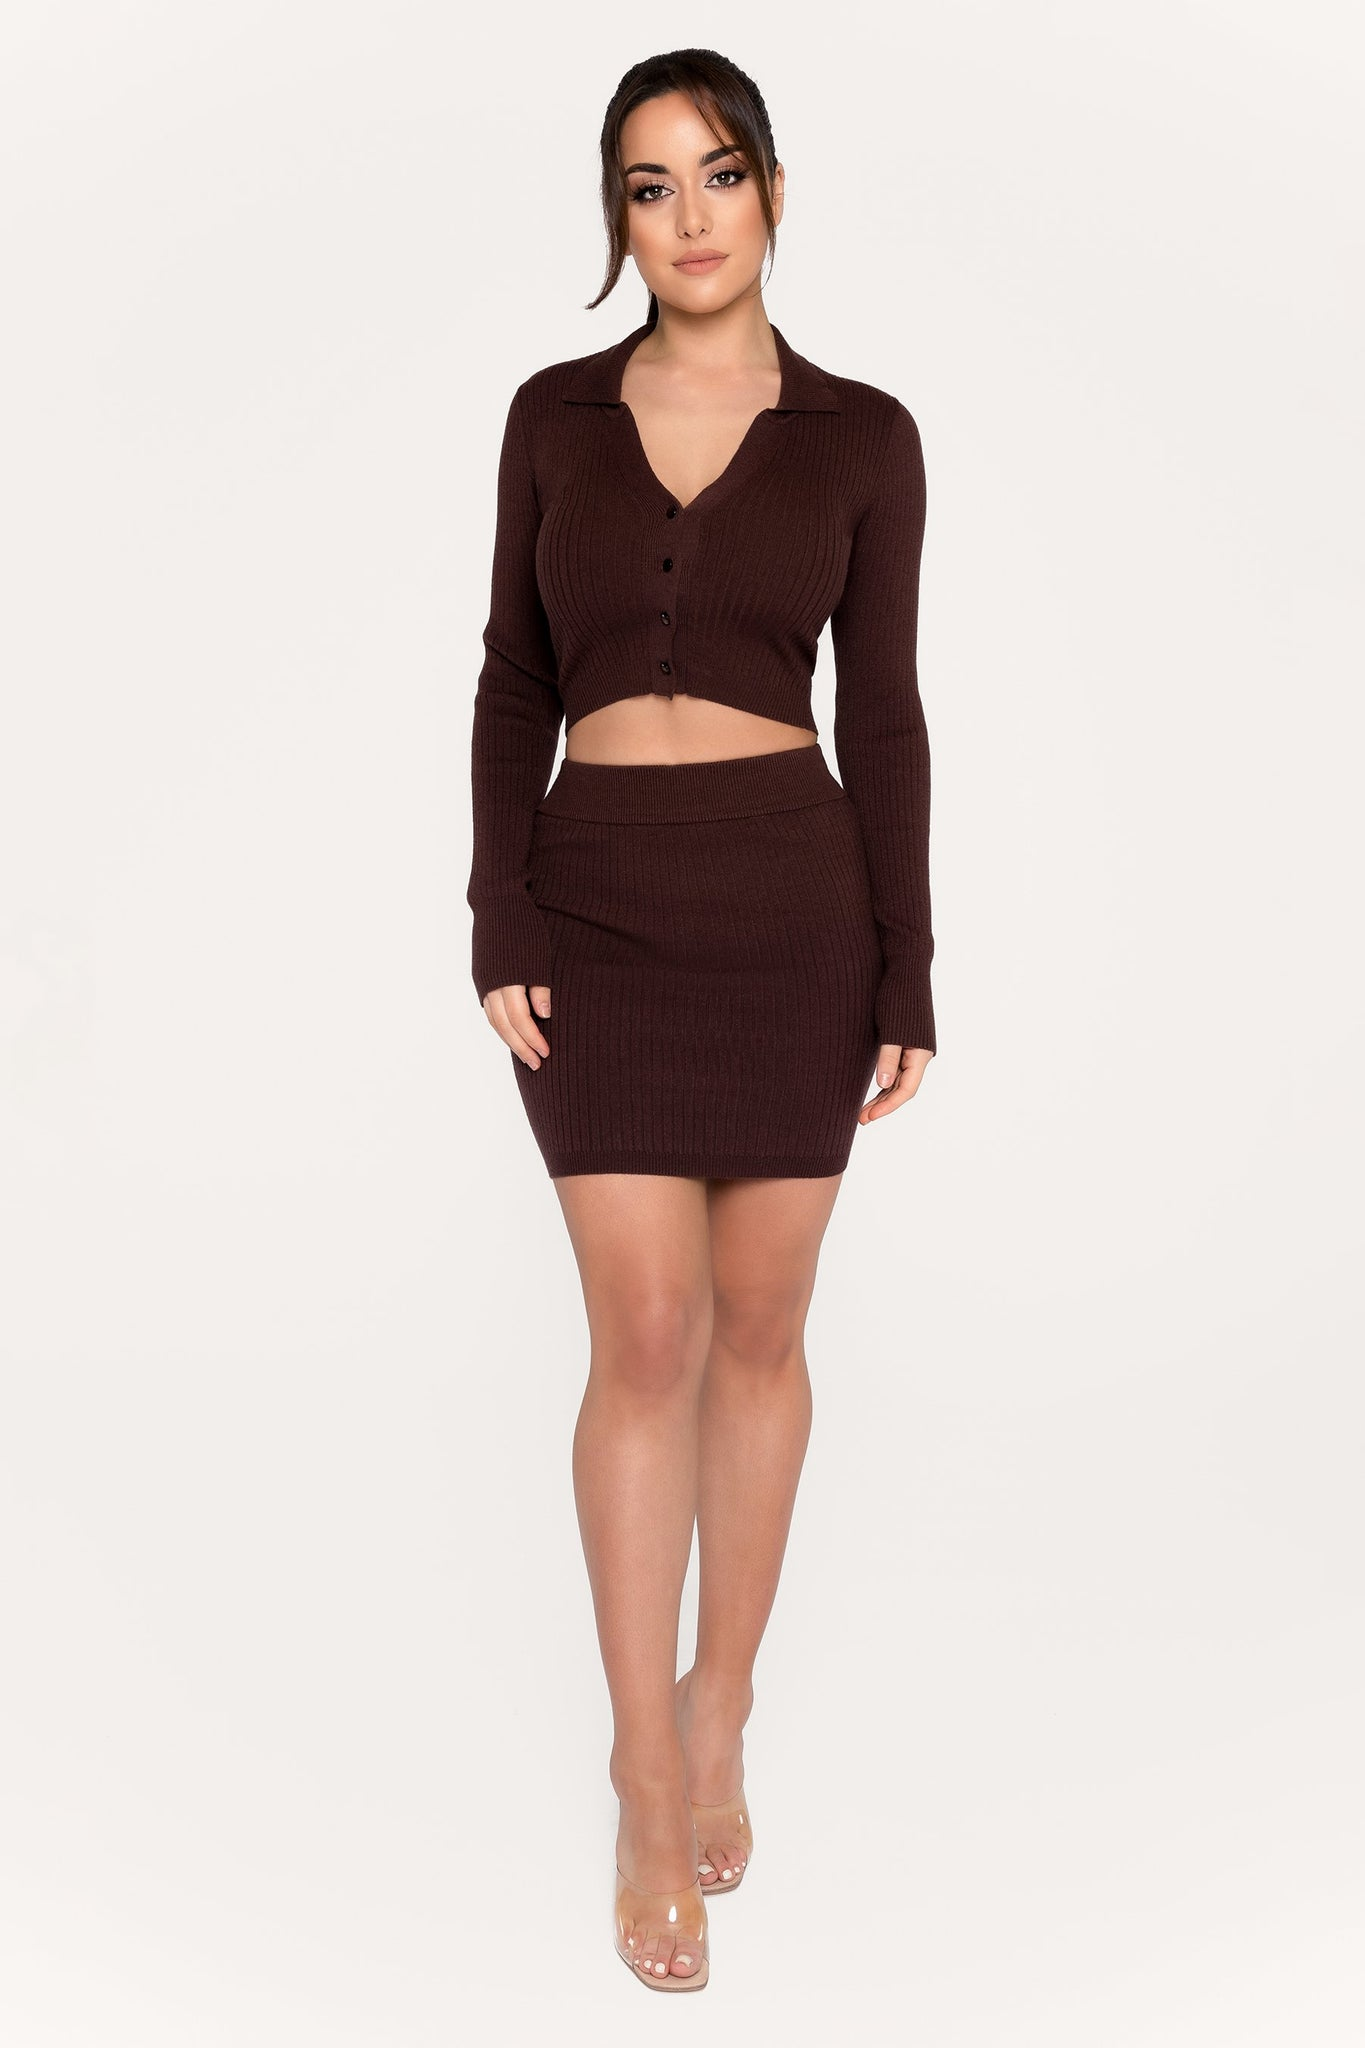 Cece Ribbed Mini Skirt - Chocolate - MESHKI